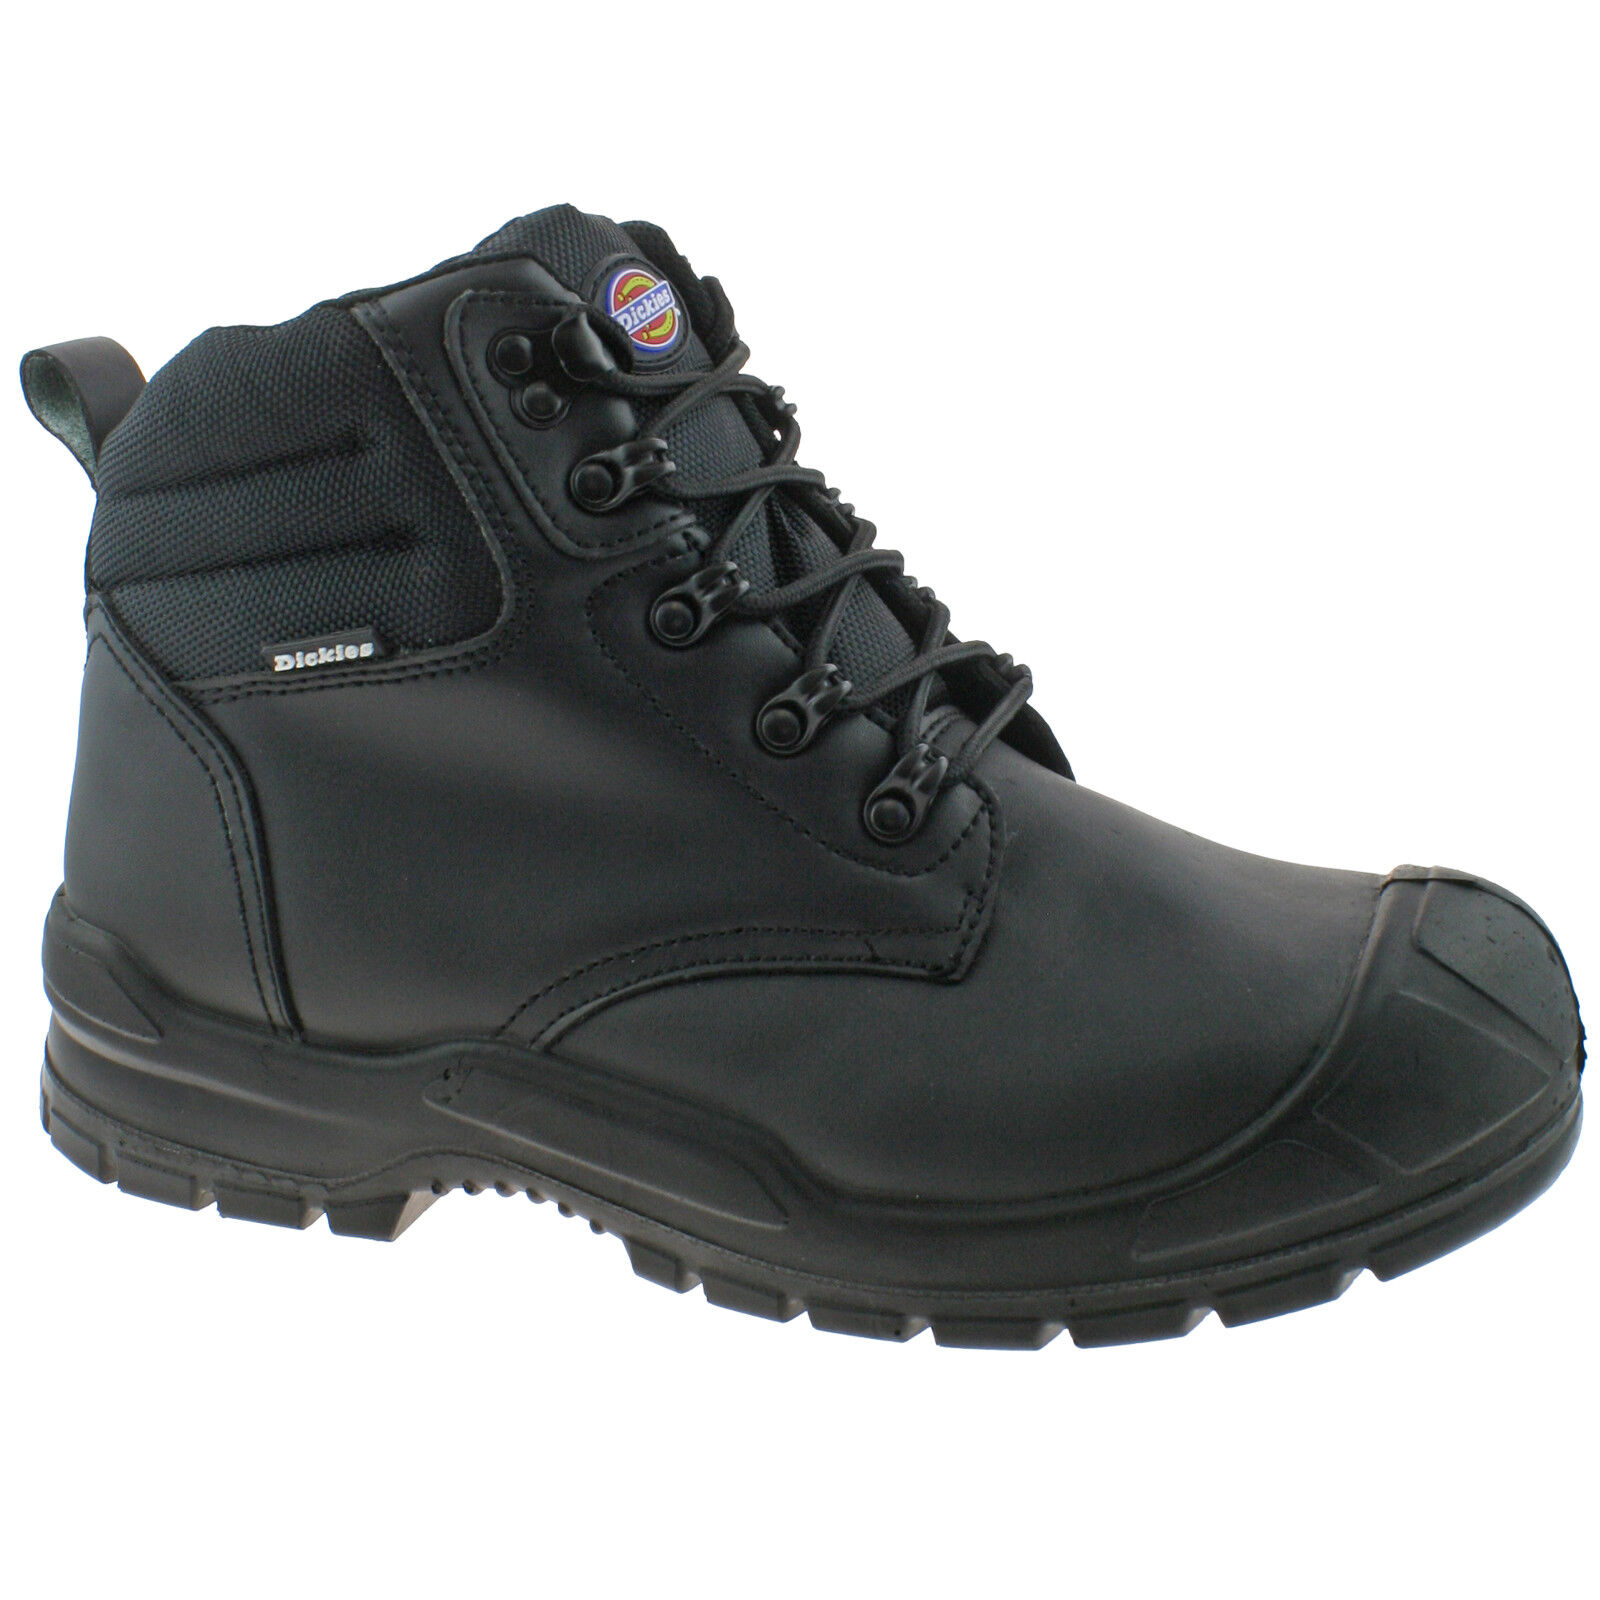 3745682a7de Details about MENS DICKIES TRENTON SAFETY BOOTS SIZE UK 3 - 14 BLACK FA9007